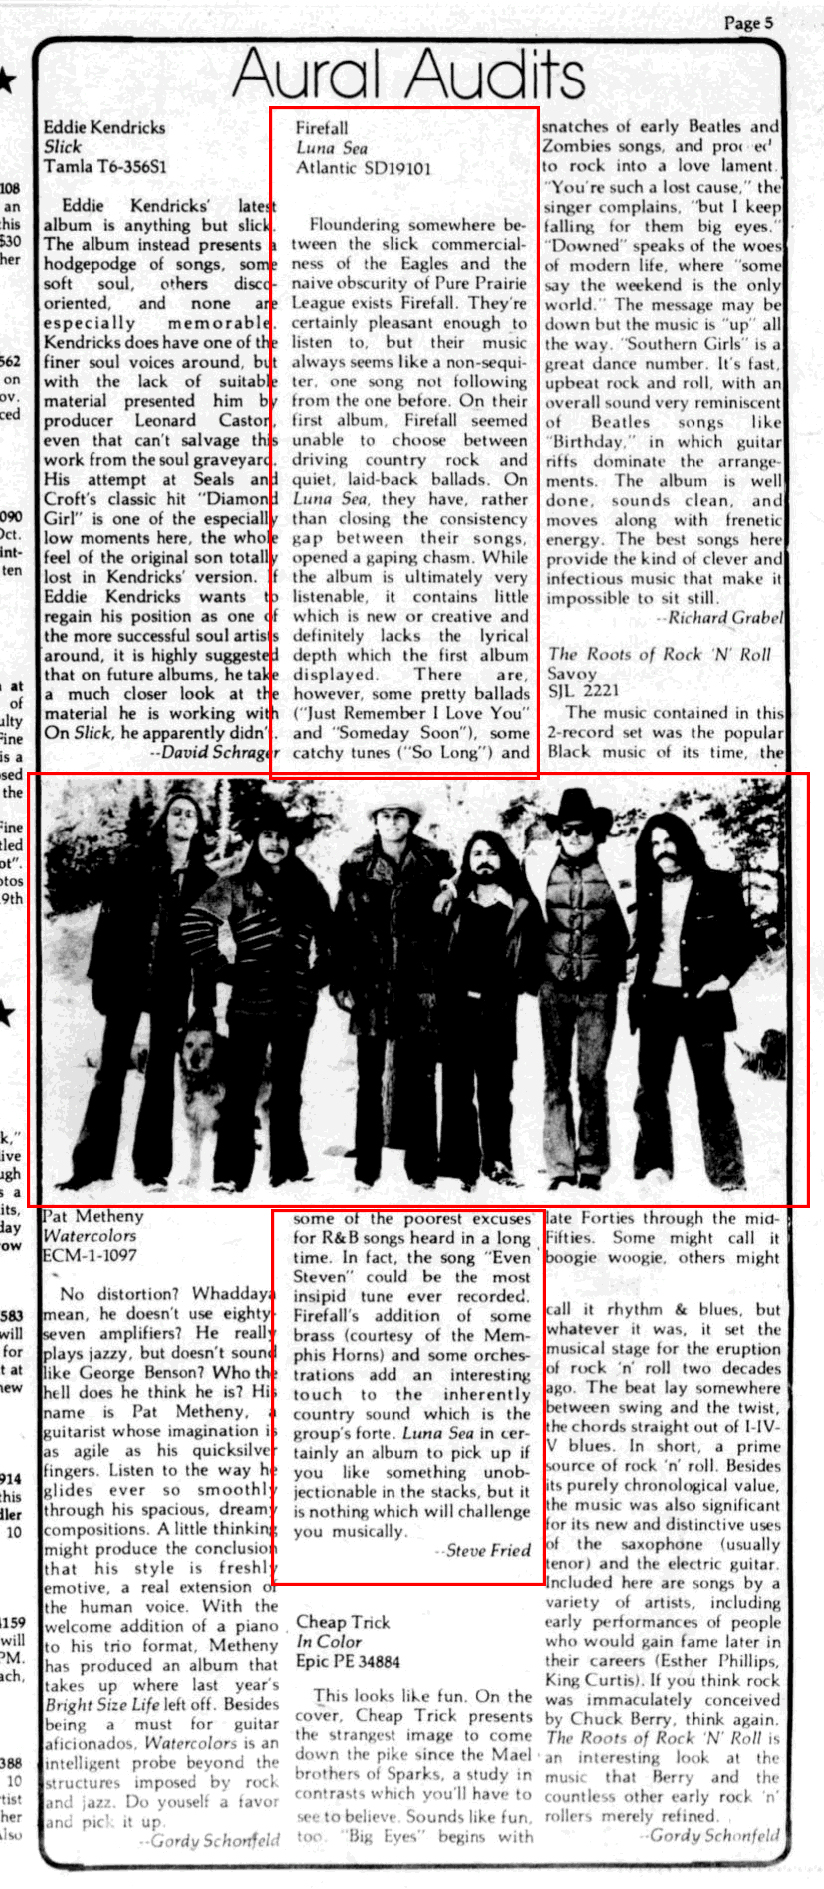 Luna_Sea_1977_9_29_philadelphia-daily-pennsylvanian-sep-29-1977-p-15.jpg